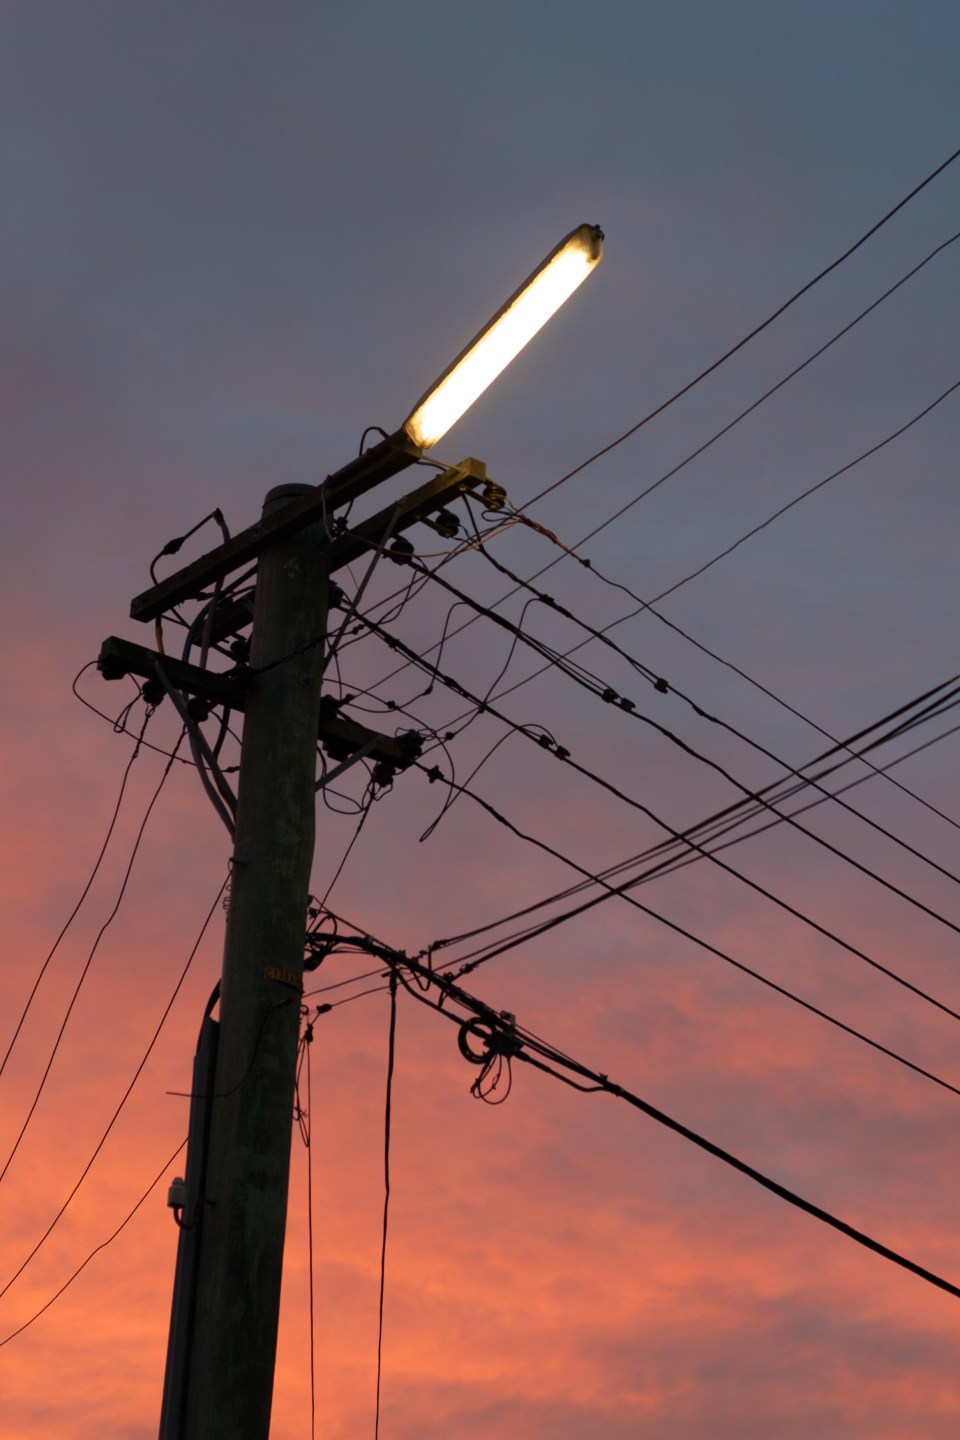 silhouetted power pole against a sunset sky